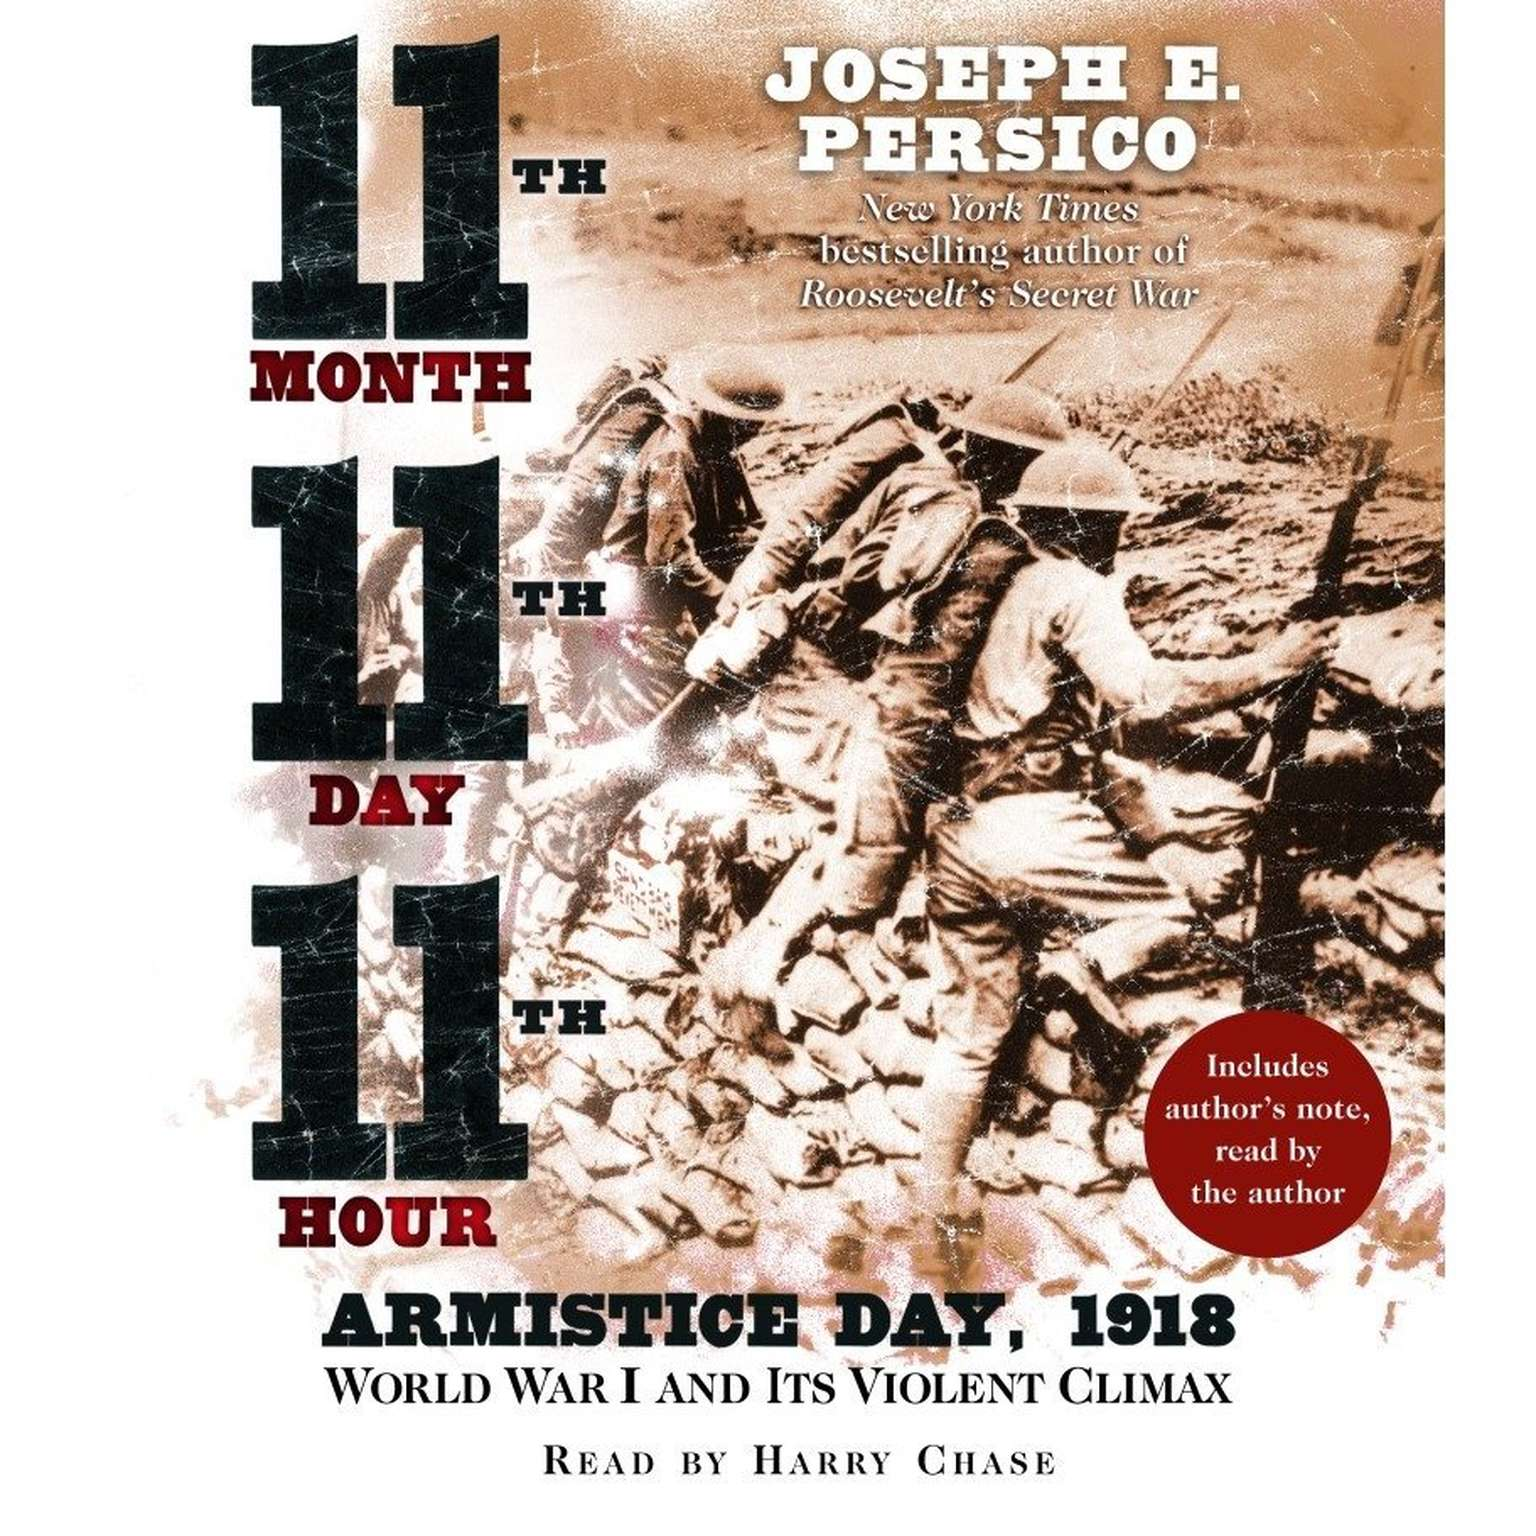 Printable Eleventh Month, Eleventh Day, Eleventh Hour: Armistice Day, 1918 Audiobook Cover Art